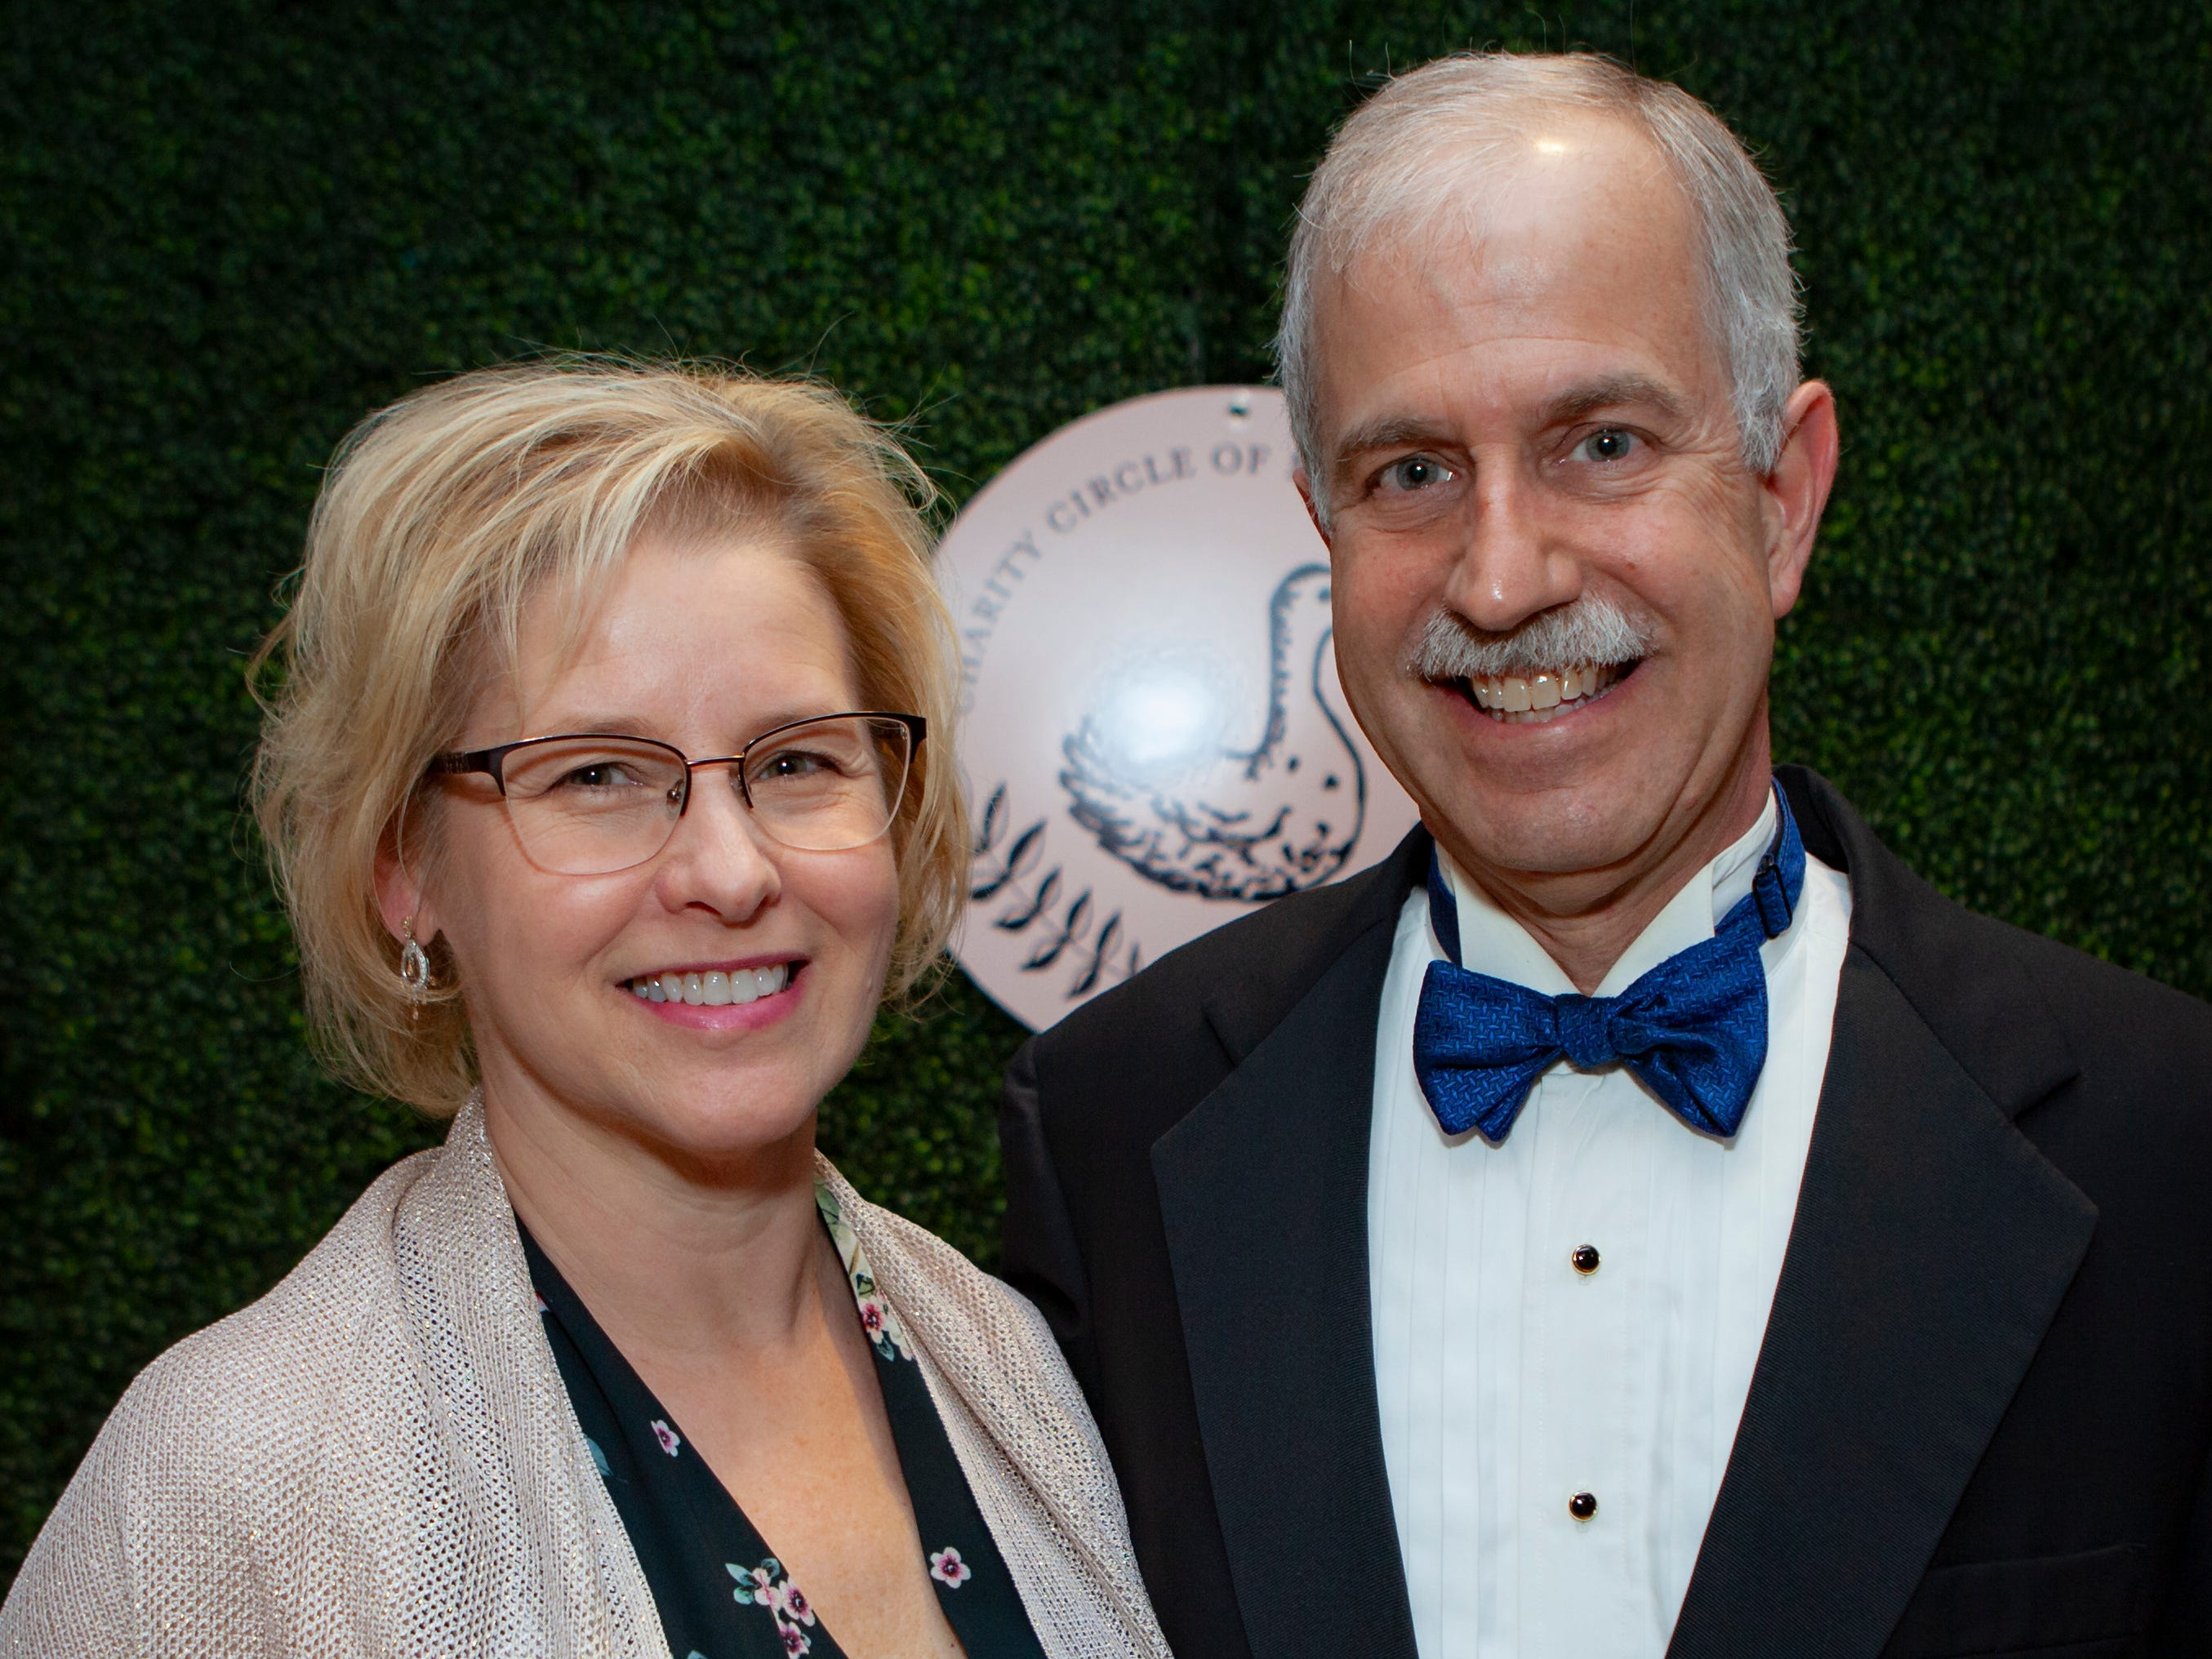 Paula and Bob Jones at the Charity Circle of Murfreesboro's 52nd Annual Duck Ball, held Saturday, April 27, 2019.